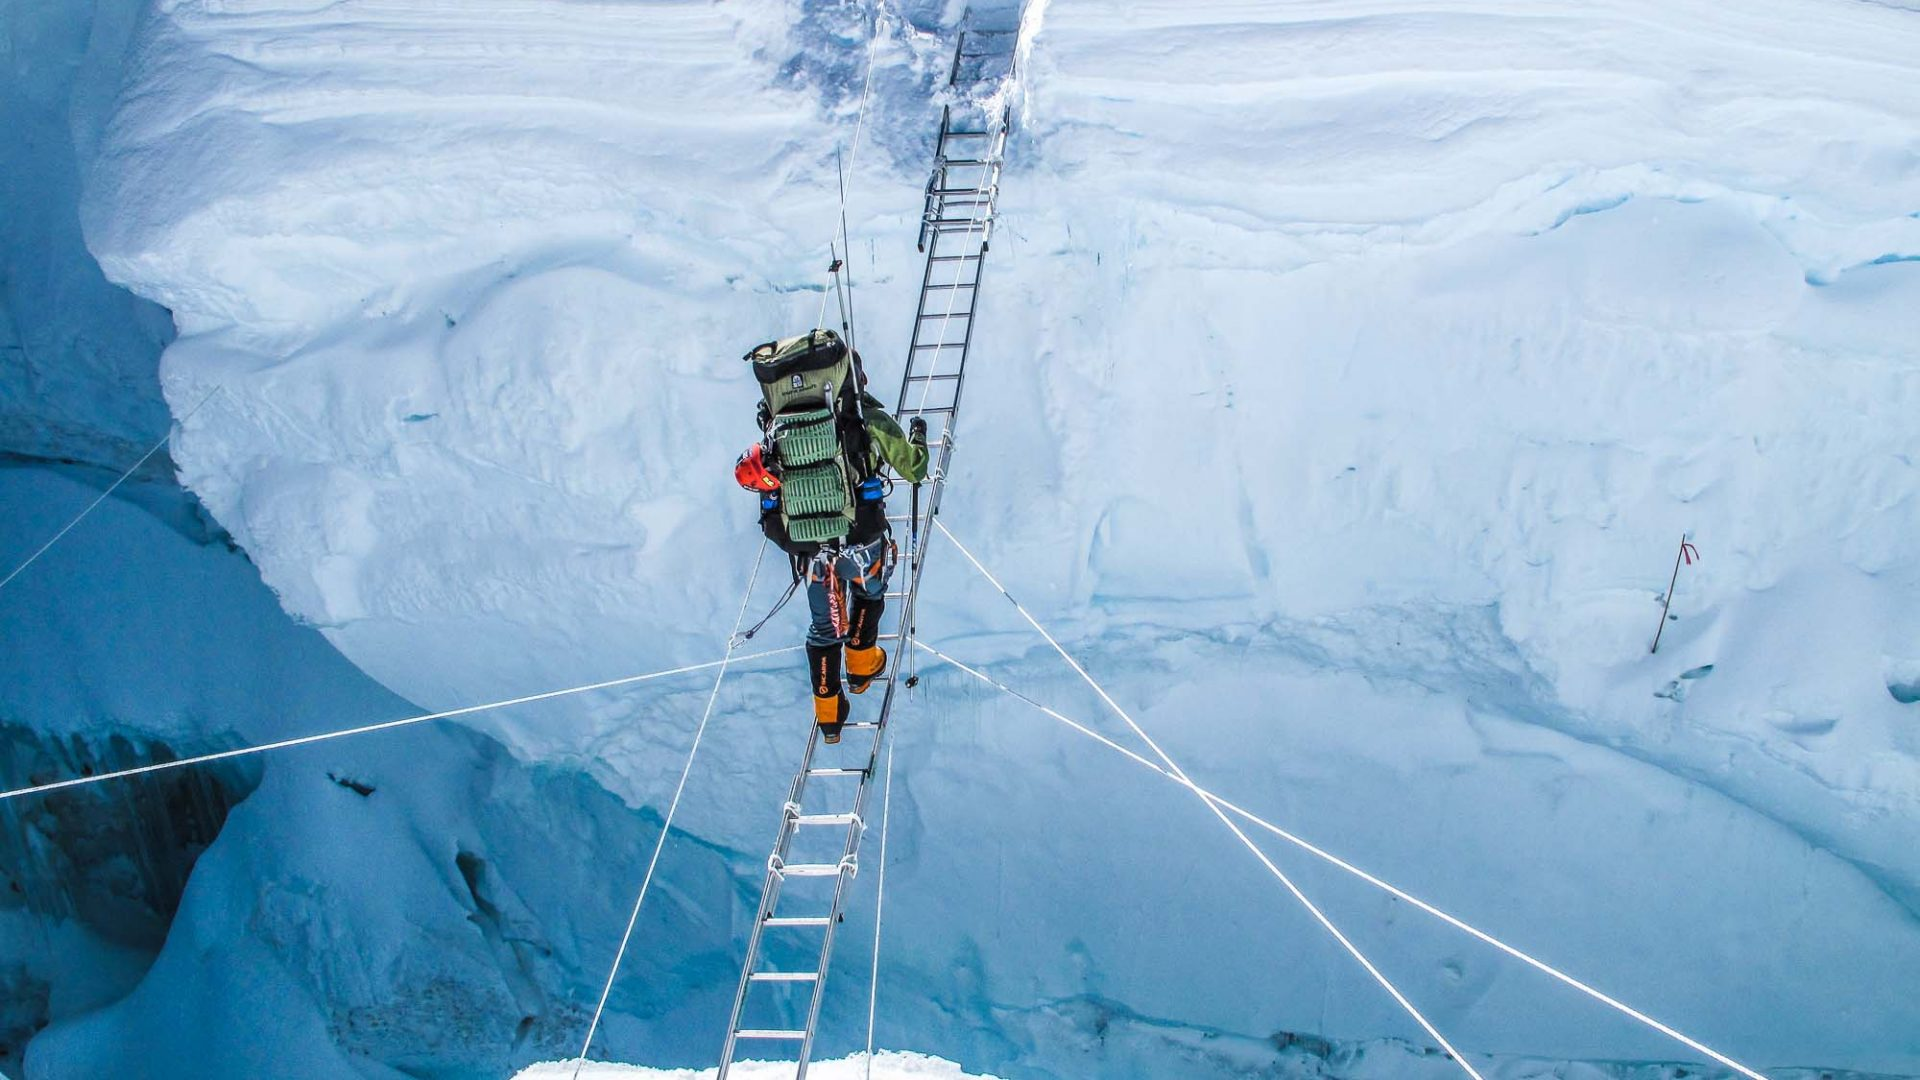 Eric Larsen climbing over a crevasse on Mount Everest.